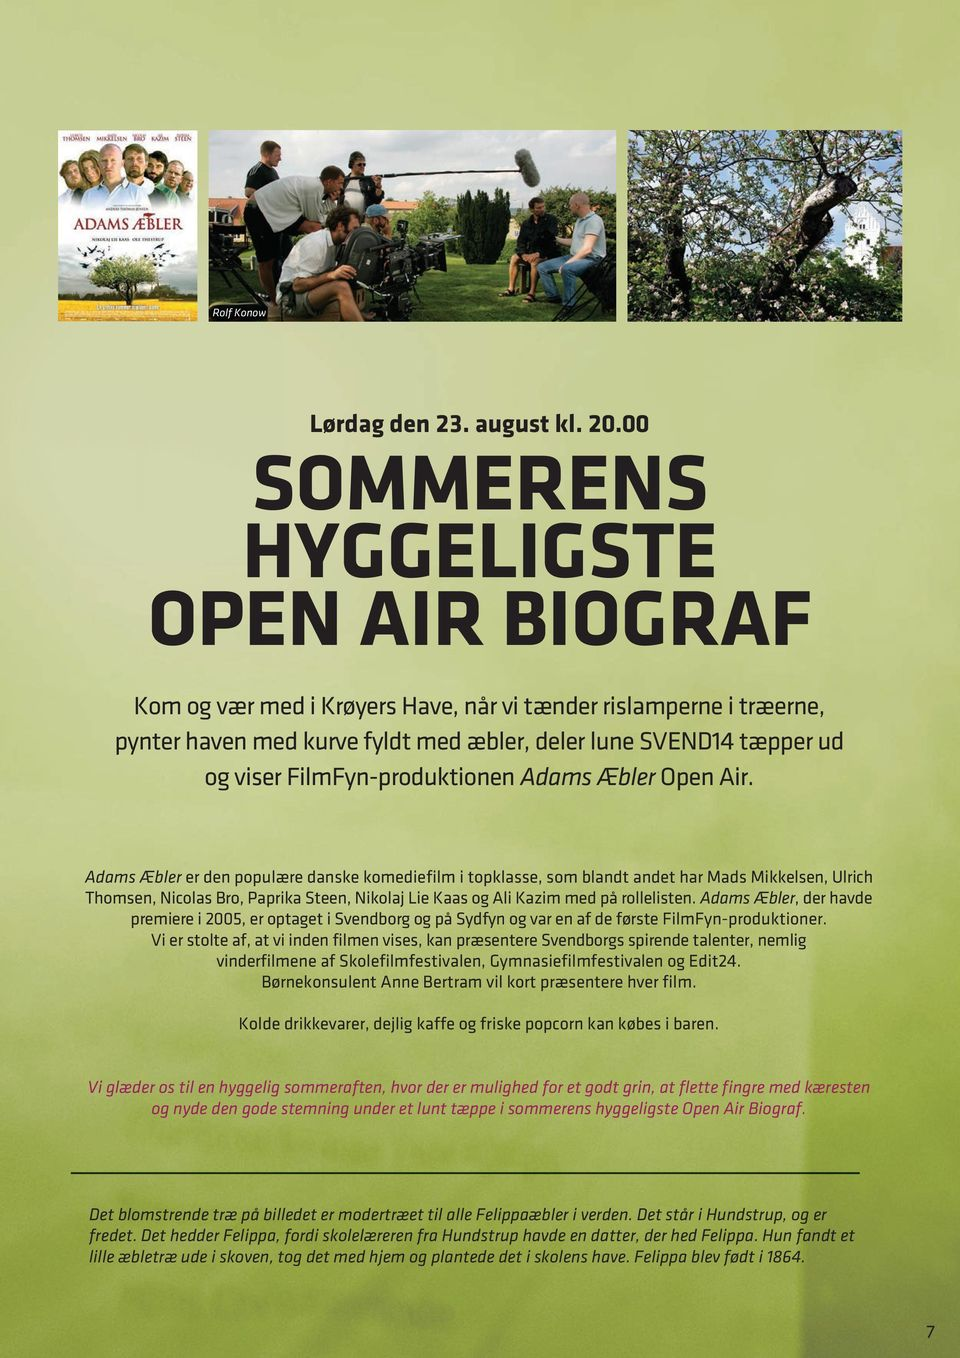 FilmFyn-produktionen Adams Æbler Open Air.